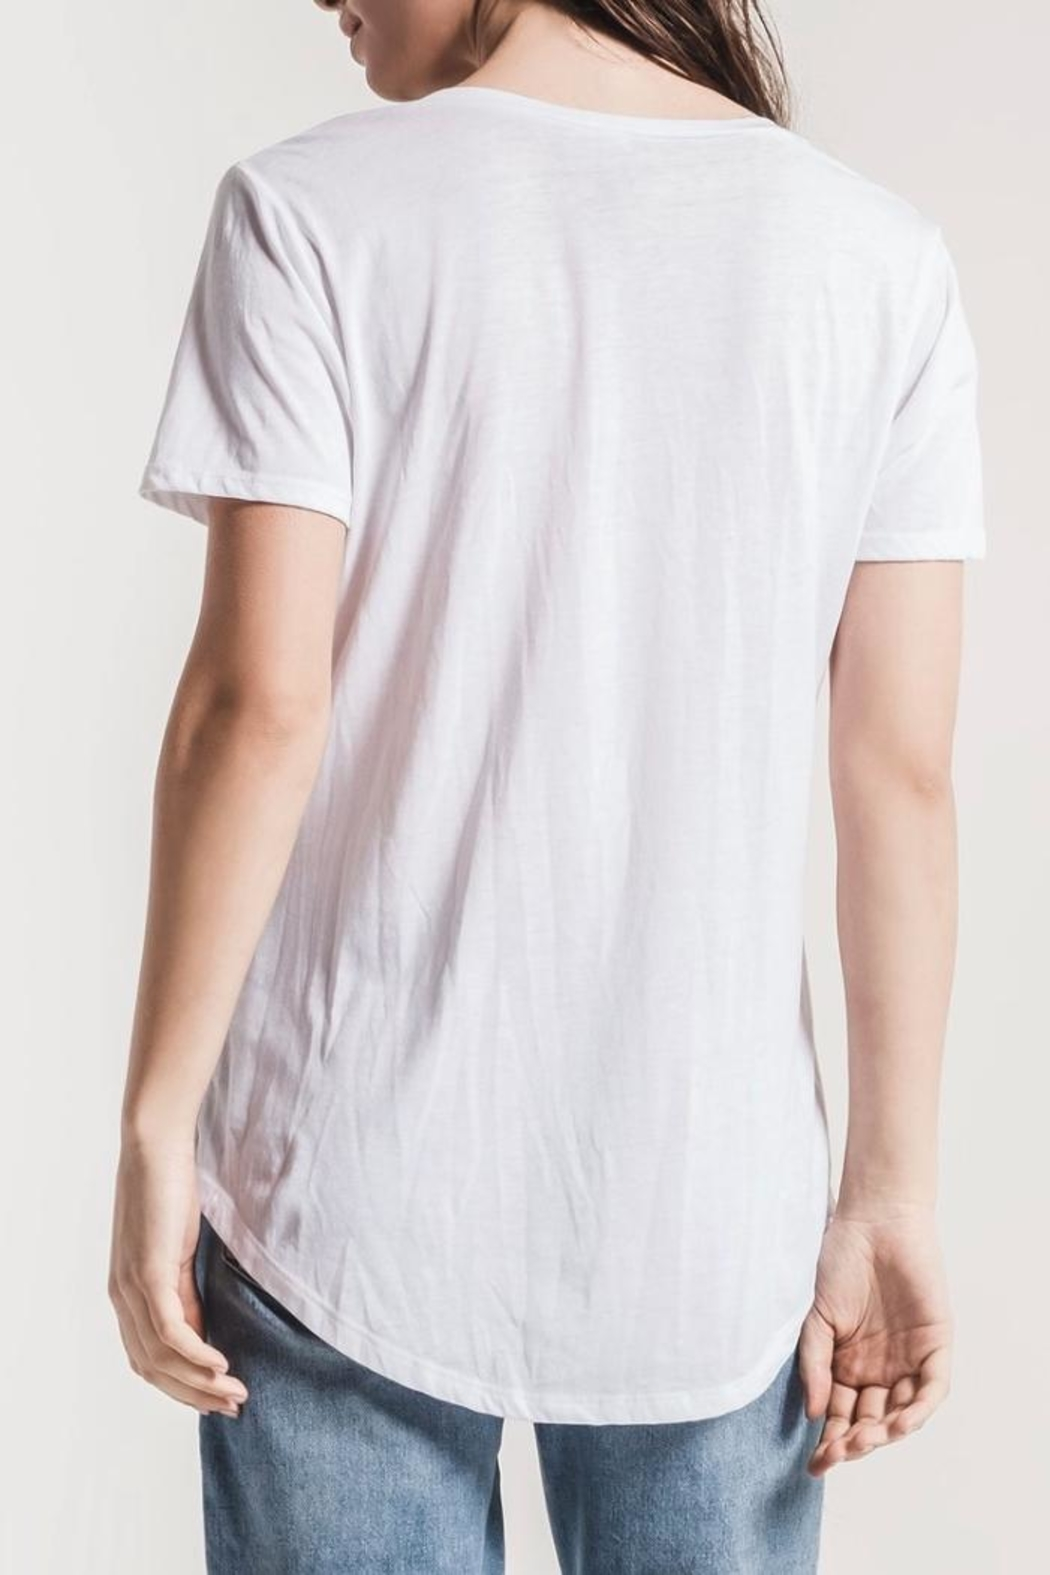 z supply The Pocket Tee - Front Full Image